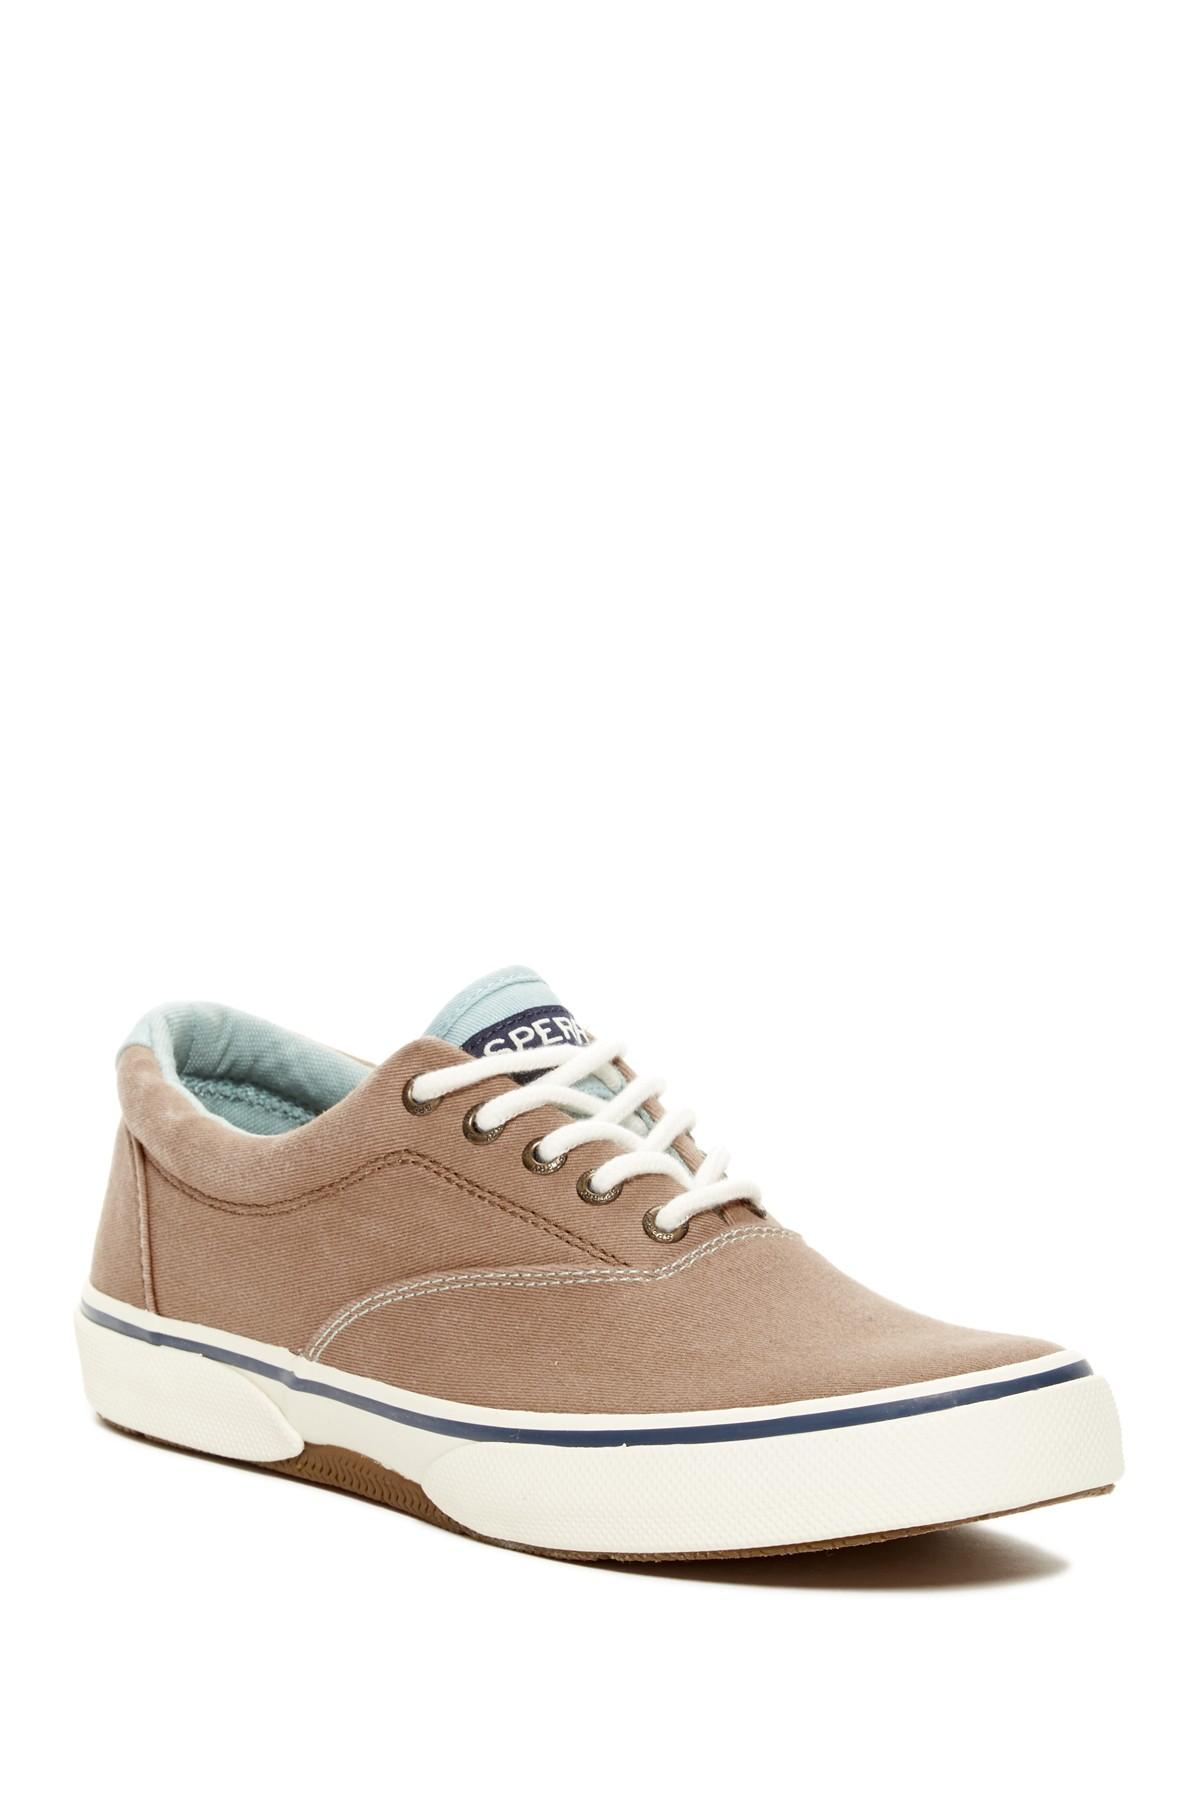 Sperry Cvo Sneaker 28 Images Striper